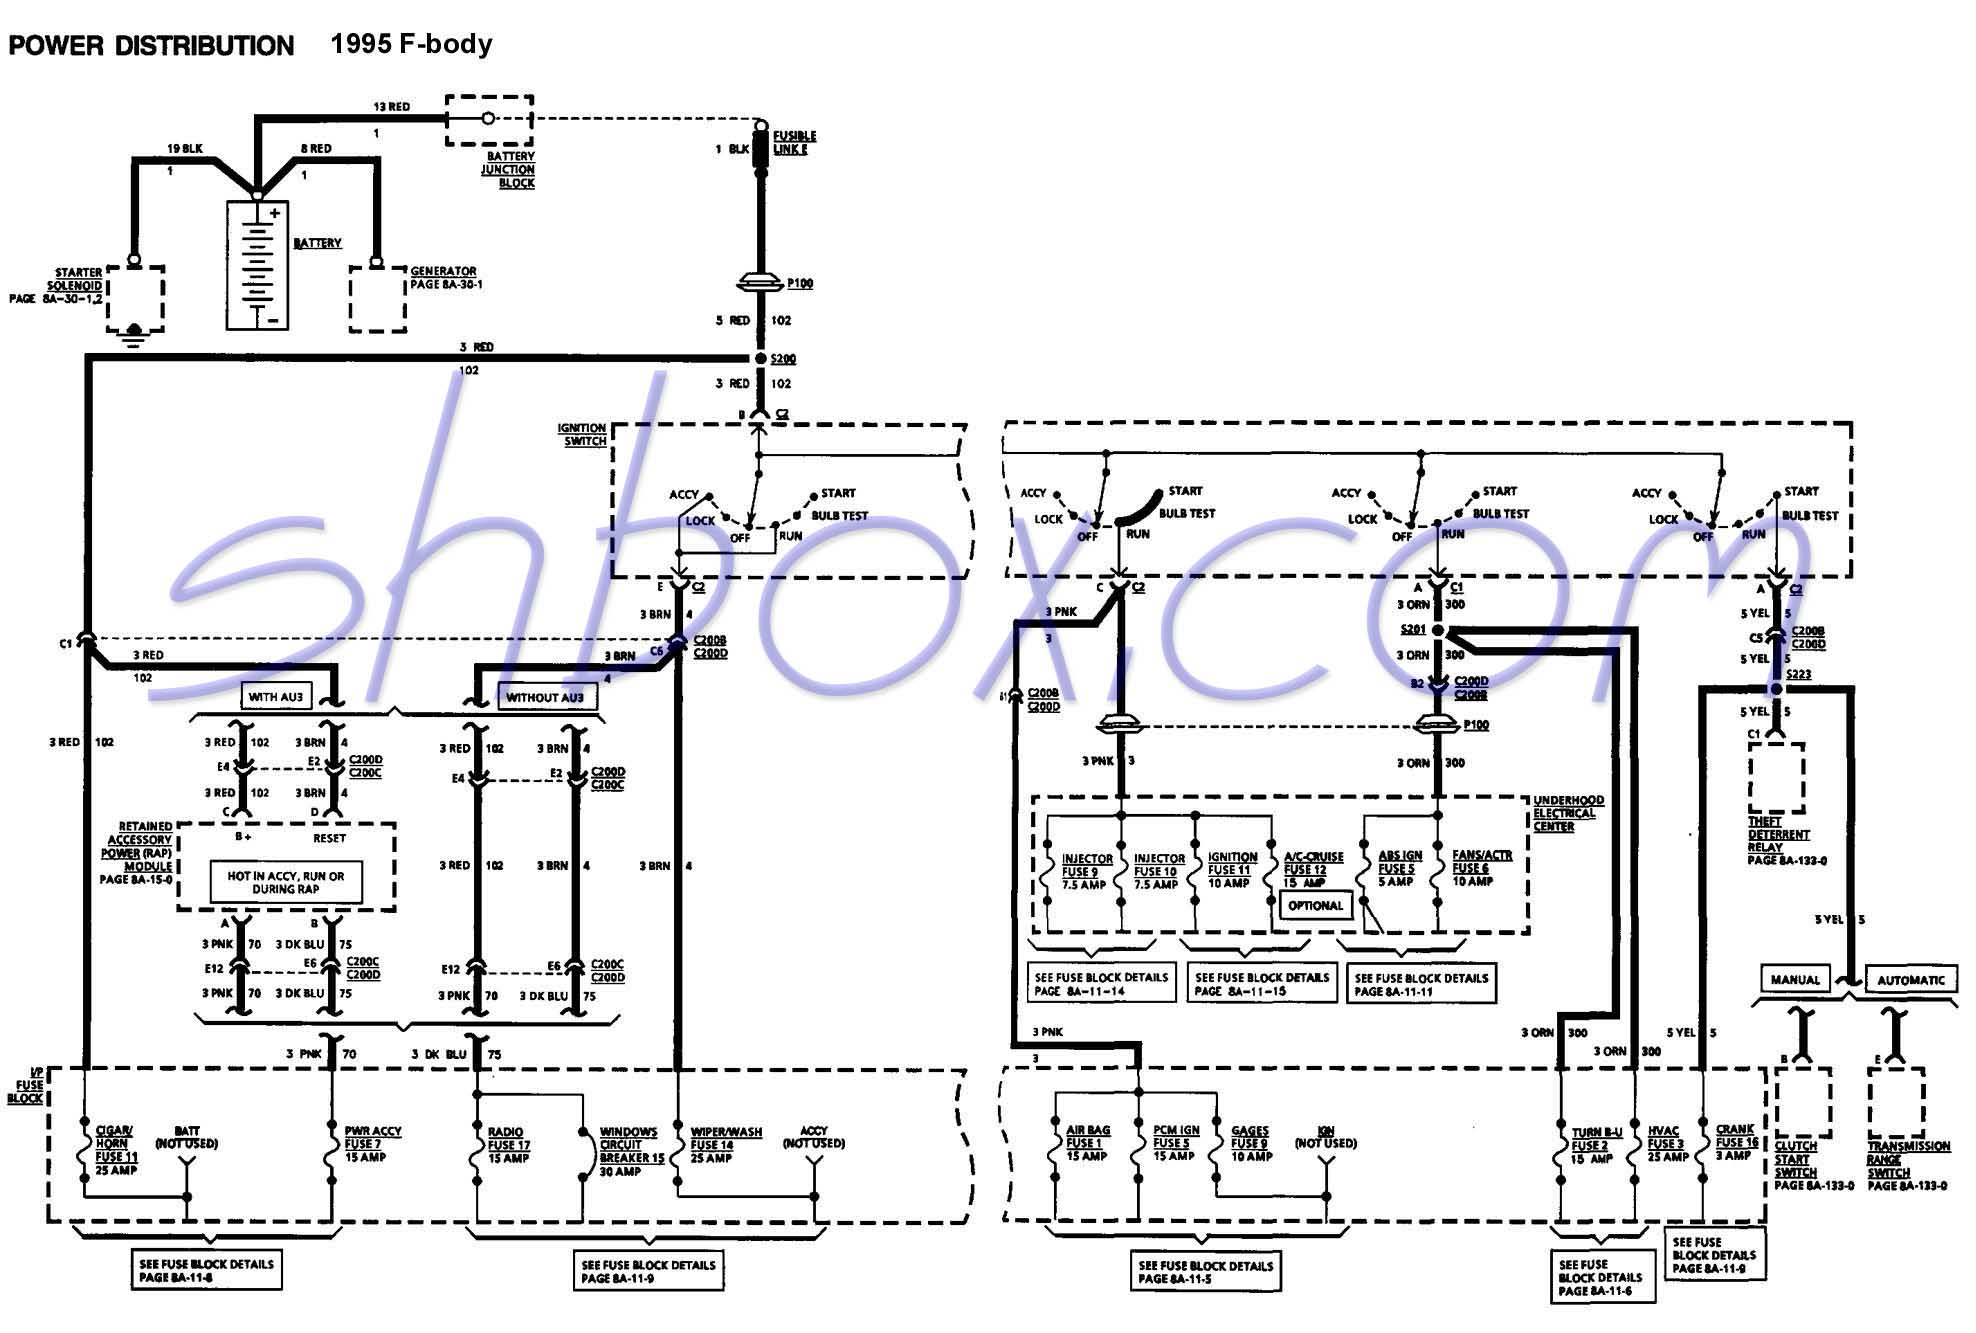 wiring diagram also 94 chevy camaro wiring diagram on camaro wire rh linxglobal co  1995 chevy silverado starter wiring diagram